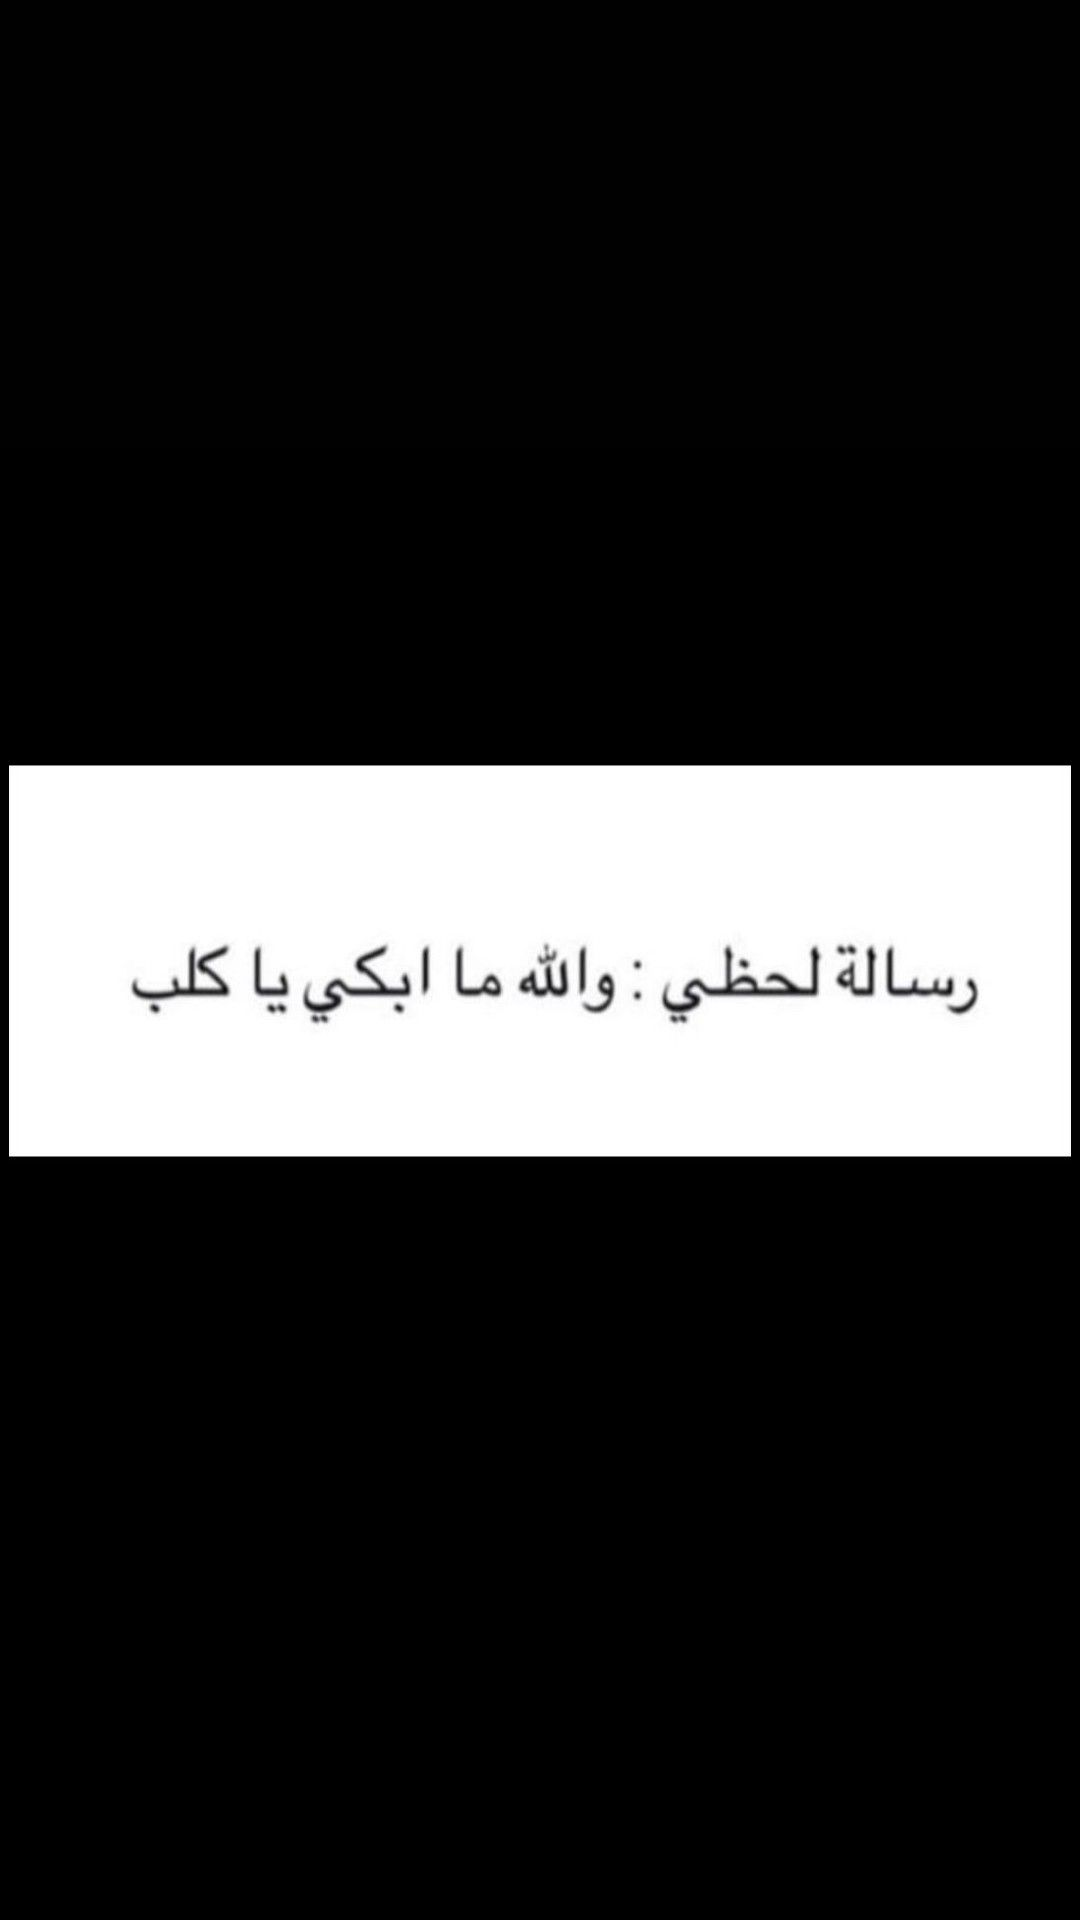 Pin By Rawan On استهبال Funny Arabic Quotes Arabic Tattoo Quotes Quotations